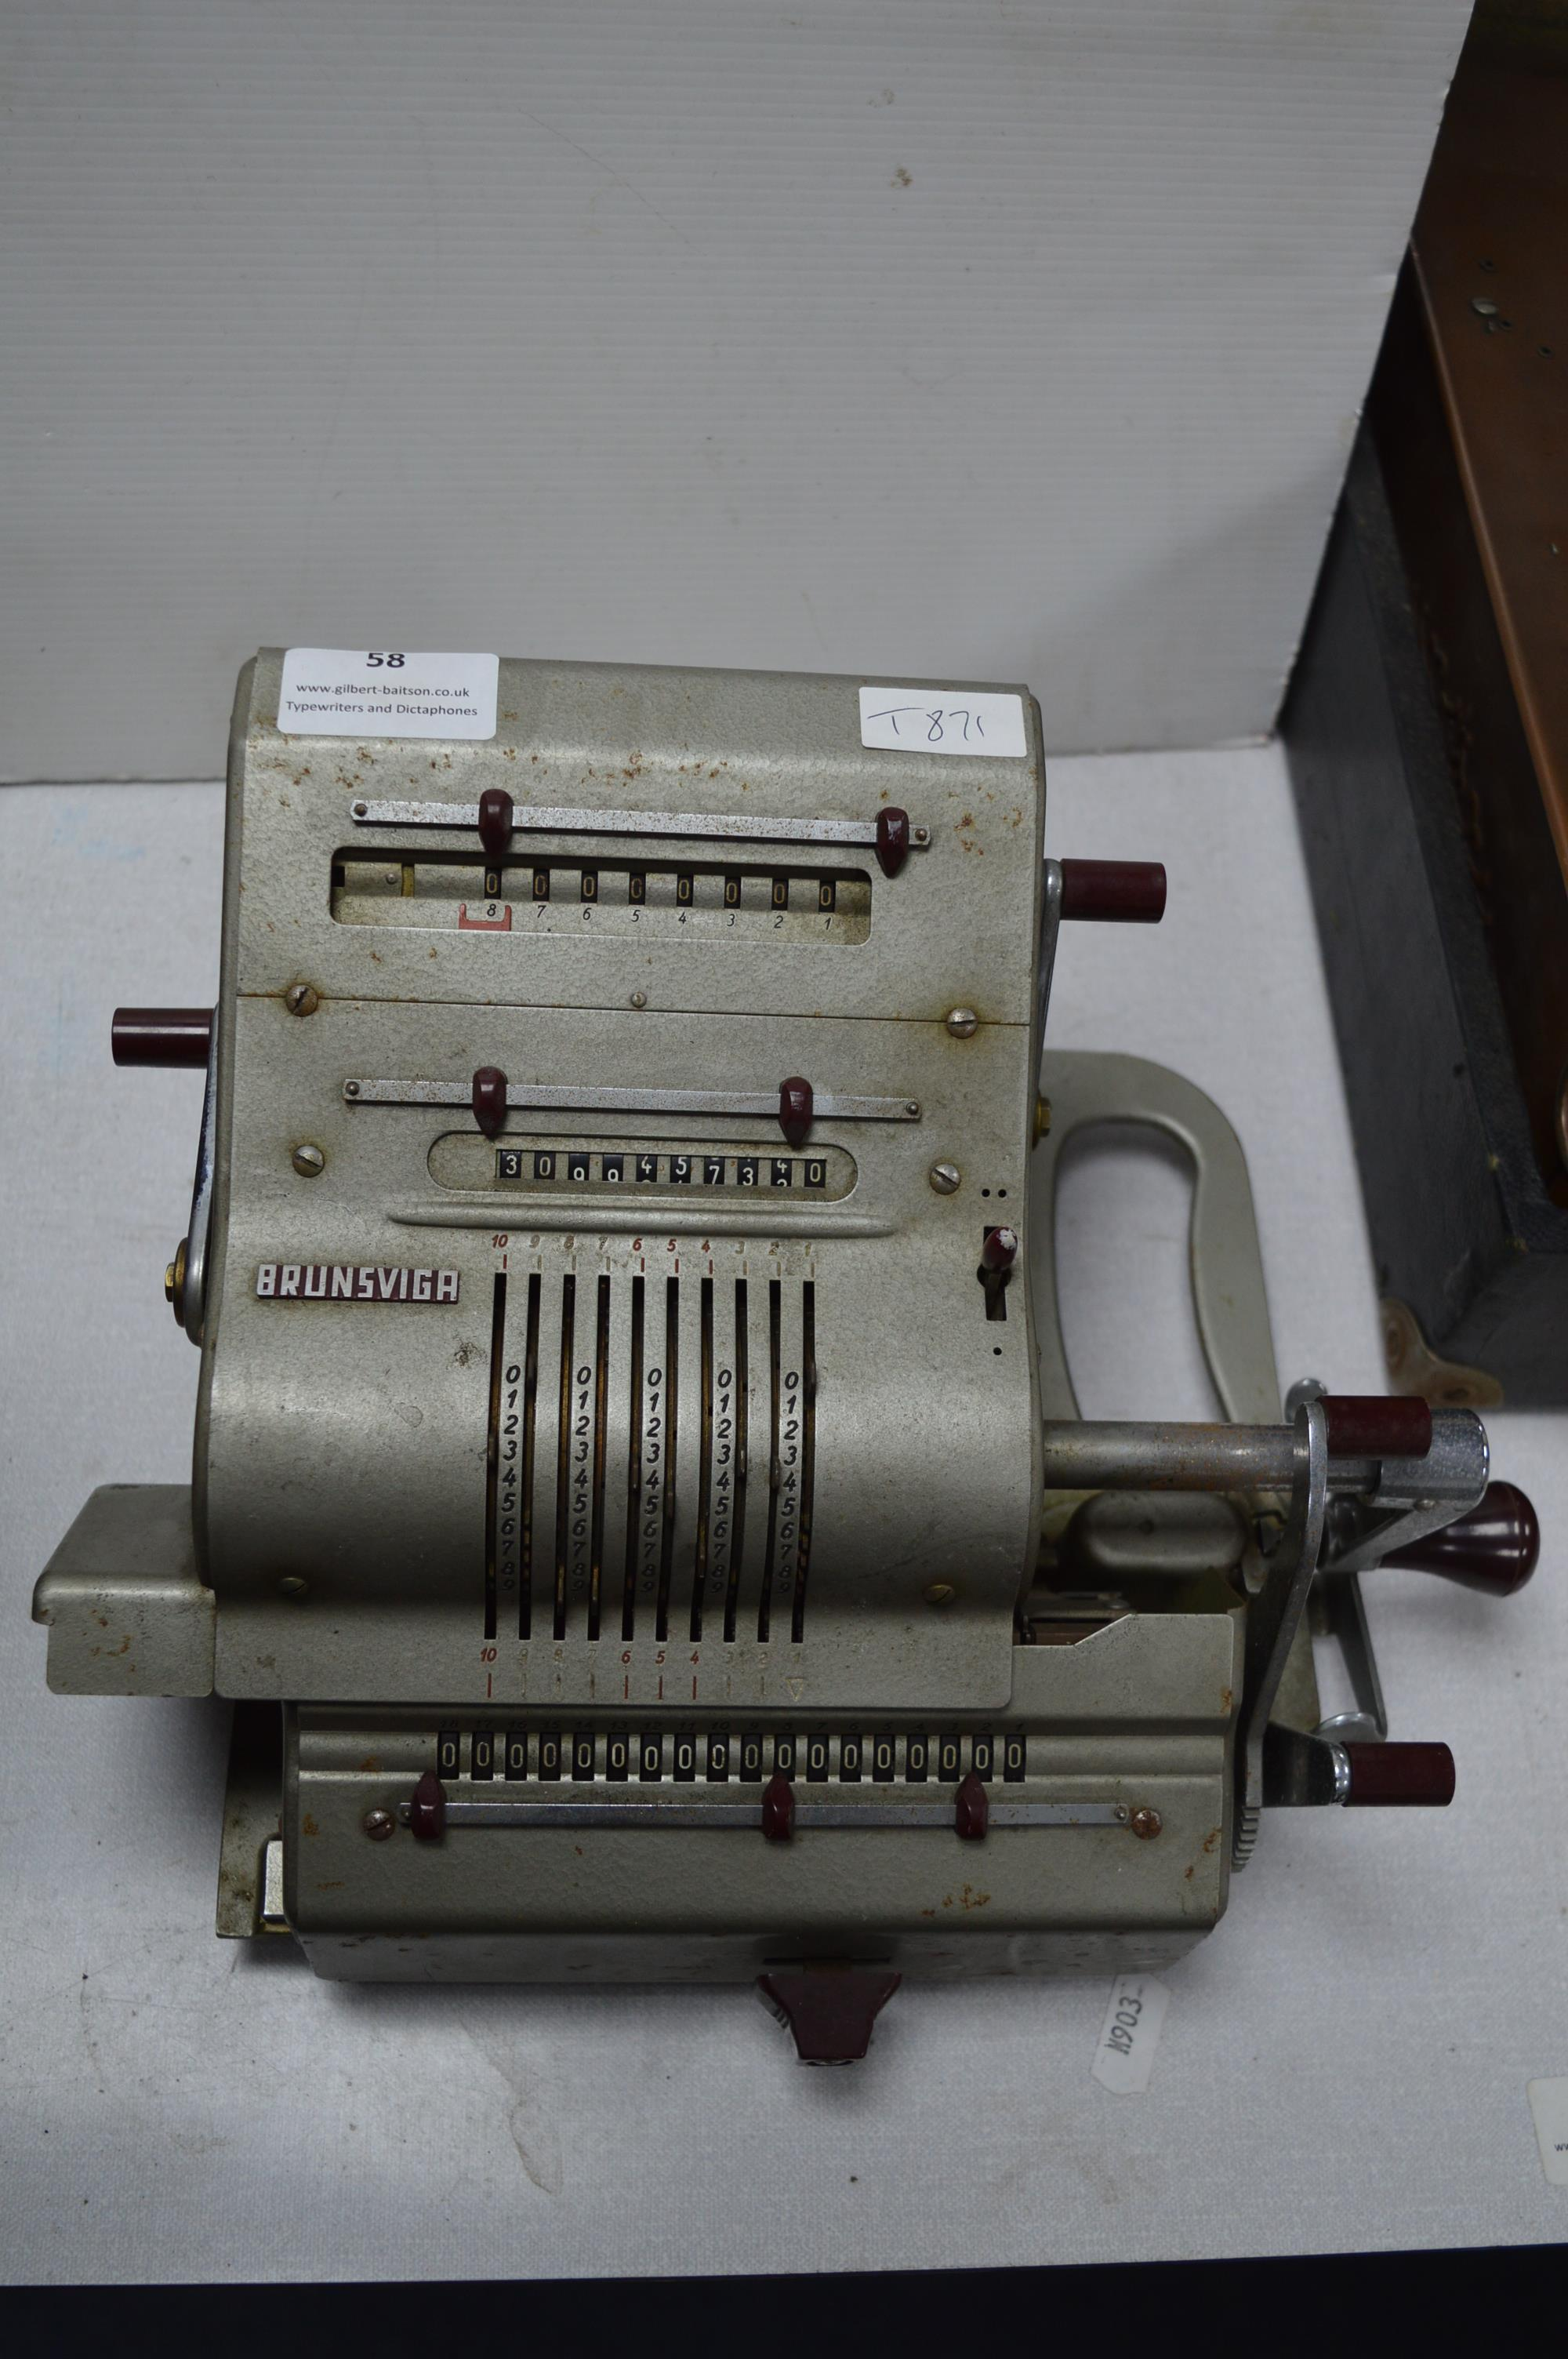 Brunsviga Office Calculating Machine Manufactured by Olympia